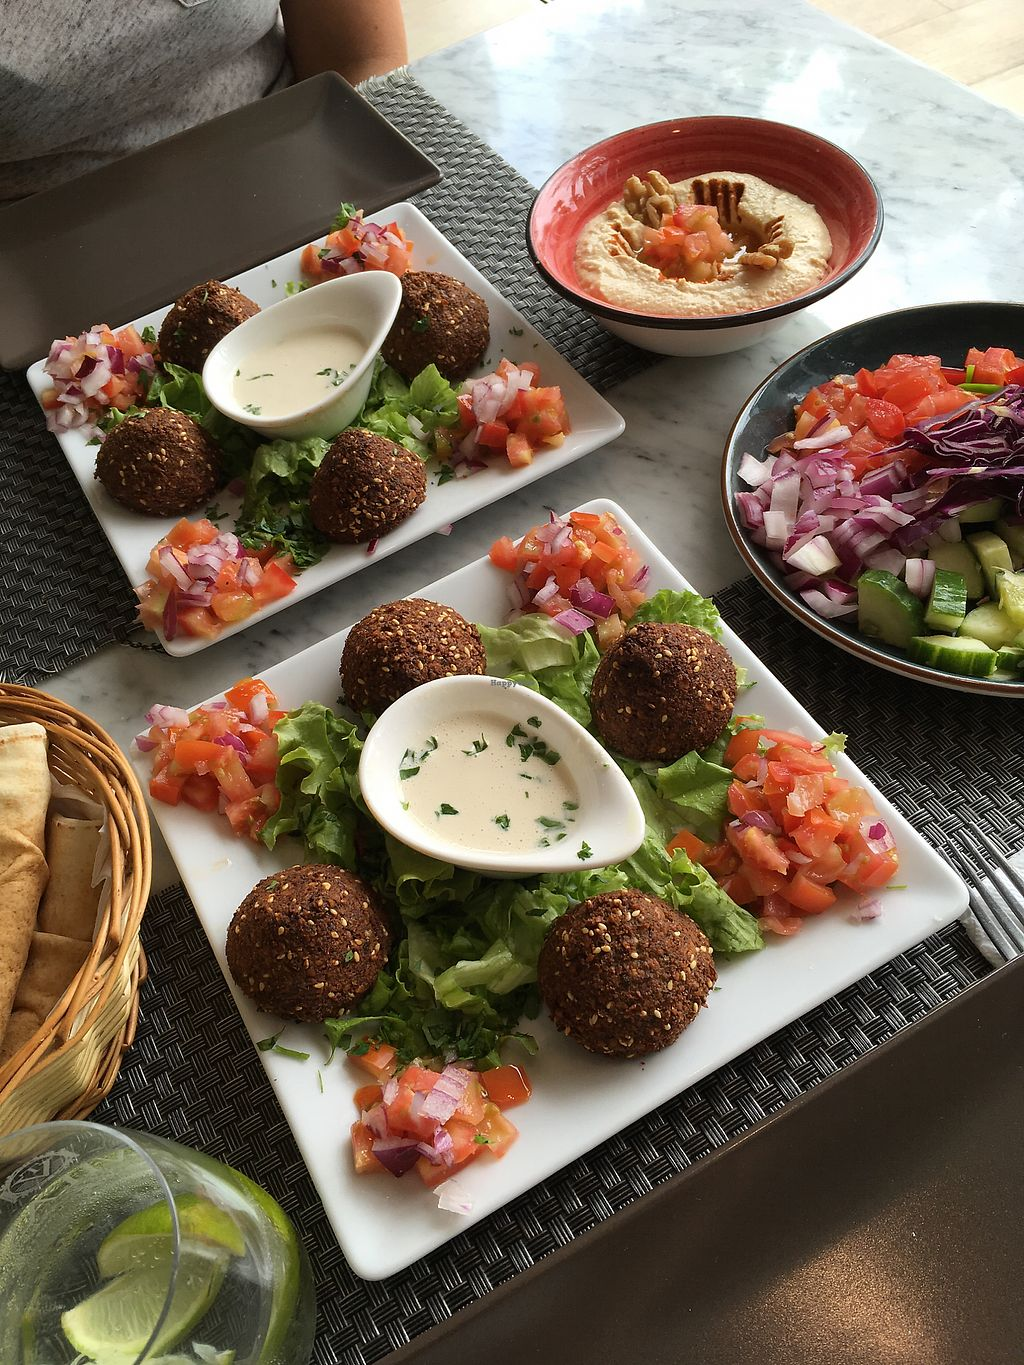 """Photo of Ilili Tenerife  by <a href=""""/members/profile/Halat"""">Halat</a> <br/>falafel with hummus and bread <br/> July 21, 2017  - <a href='/contact/abuse/image/90140/282848'>Report</a>"""